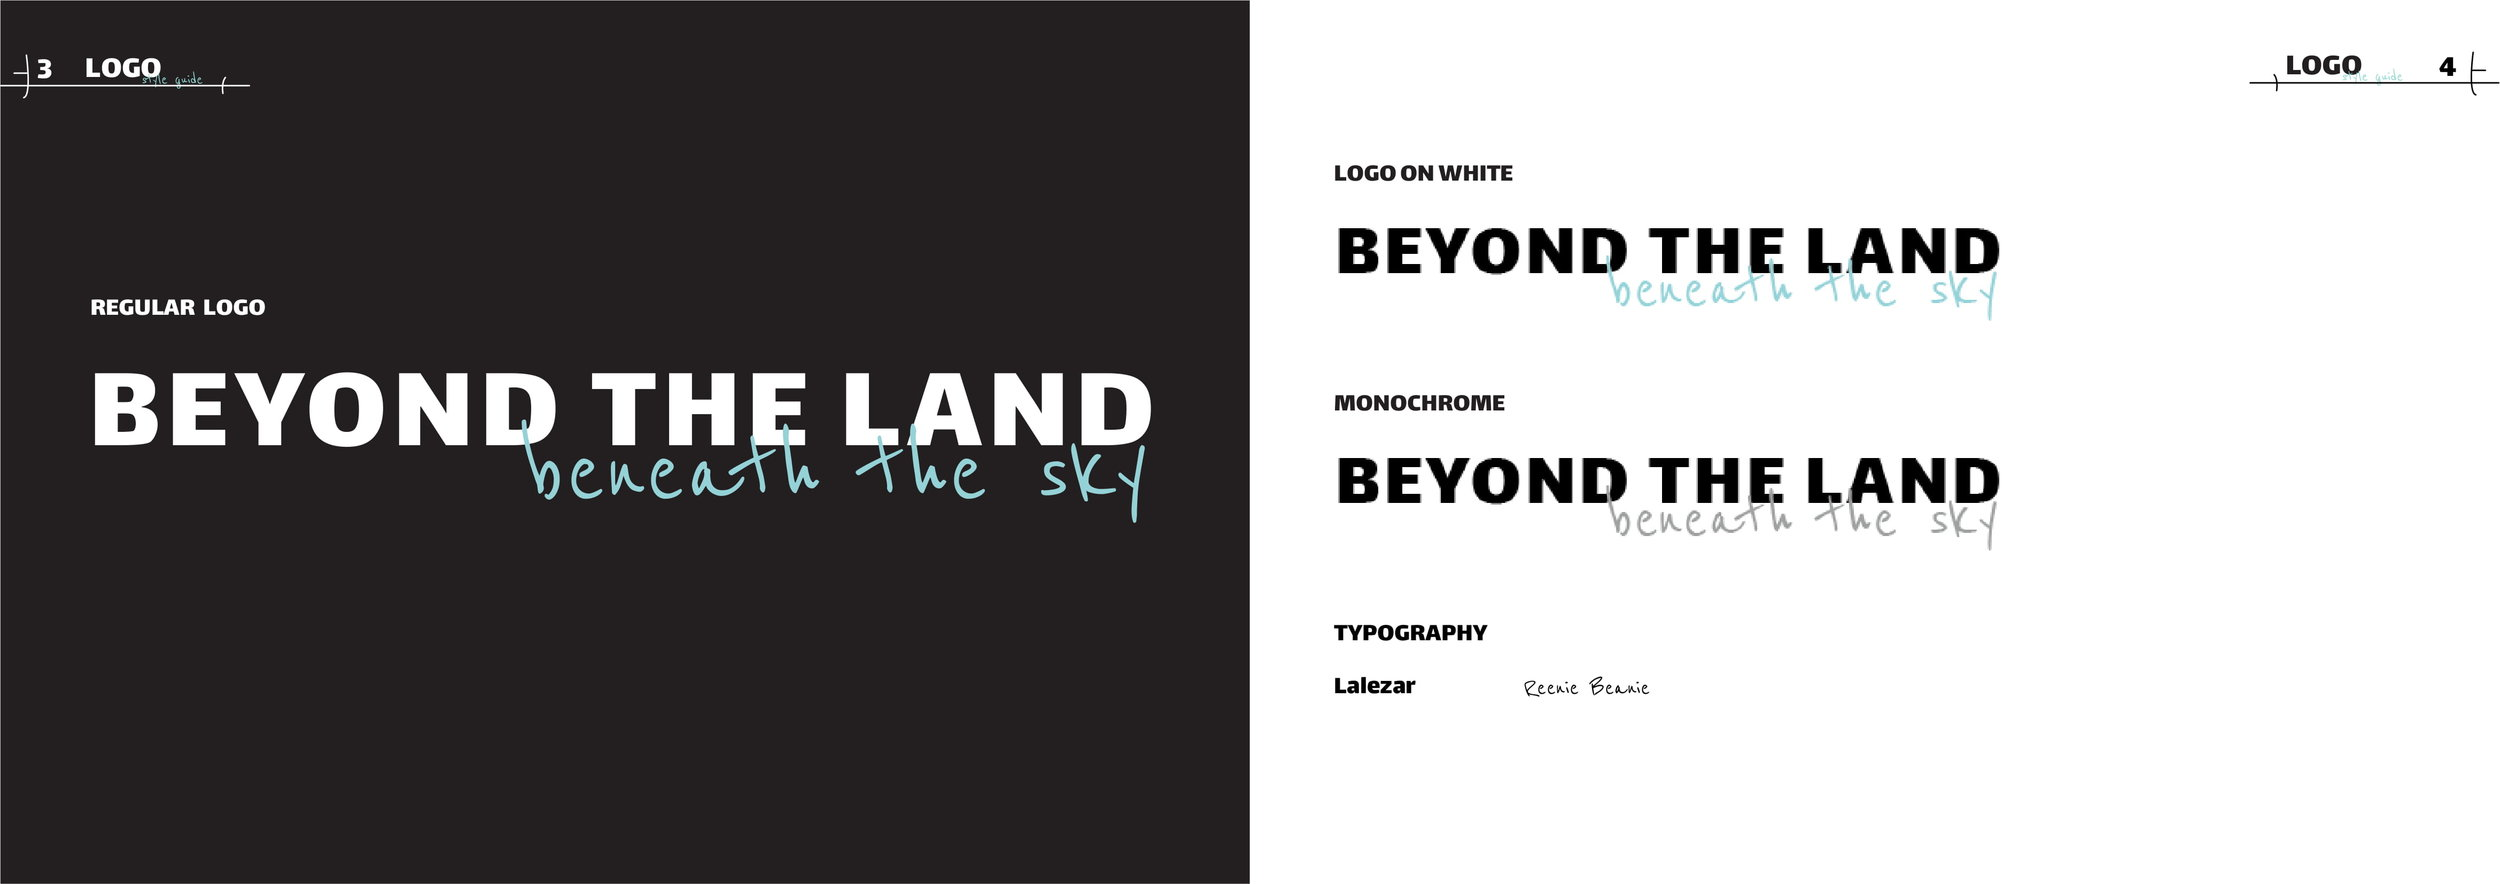 The bold sans serif Lalezar represents the heavy industries in Syracuse, while the calligraphic teal typeface, Reenie Beanie represents the unpolluted nature.